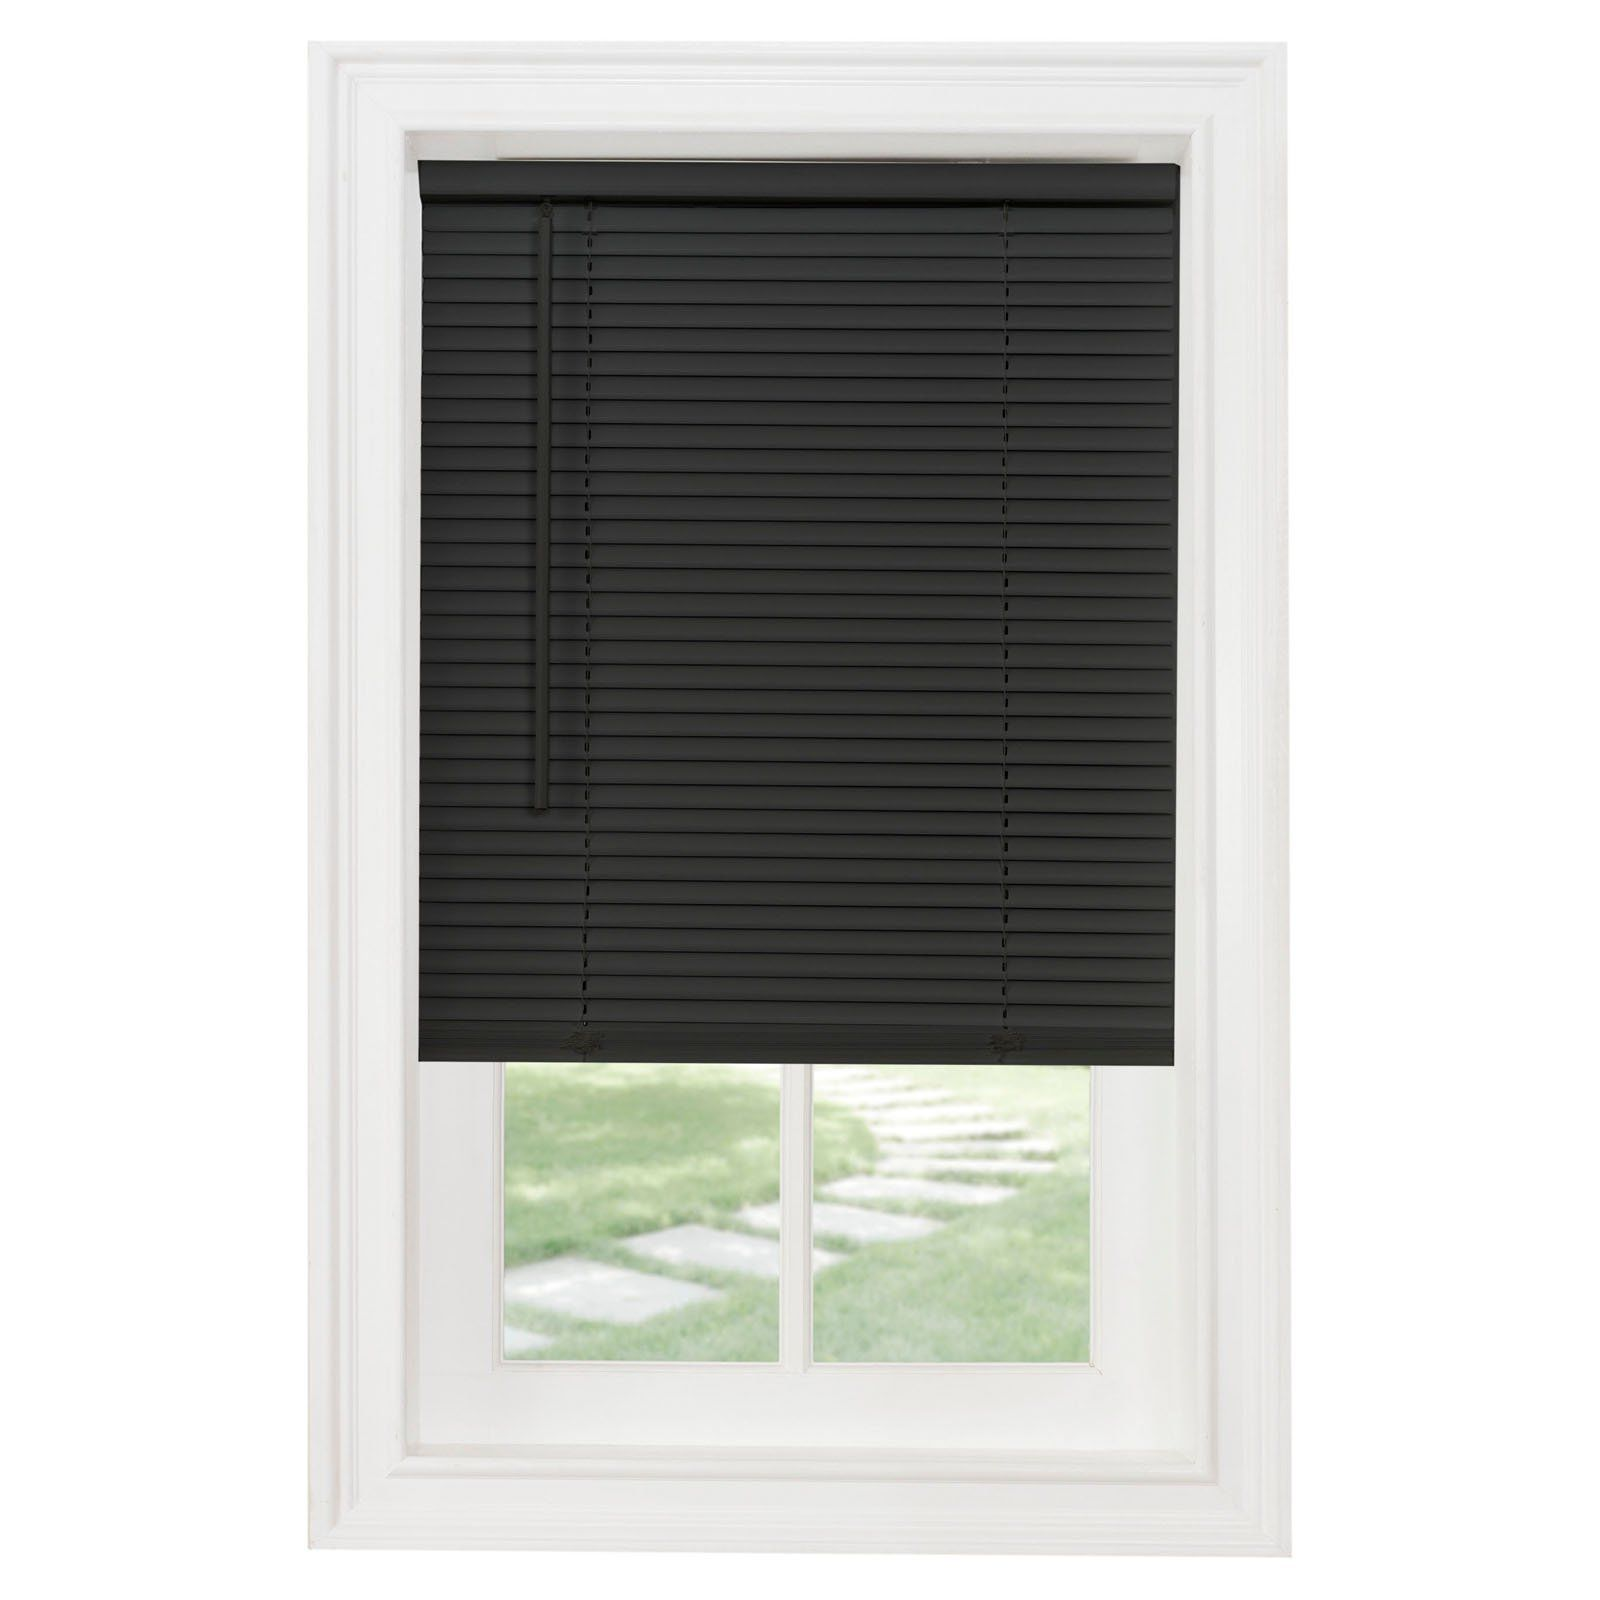 Achim 1 In Gii Morningstar Cordless Vinyl Mini Blinds Vinyl Mini Blinds Mini Blinds Blinds